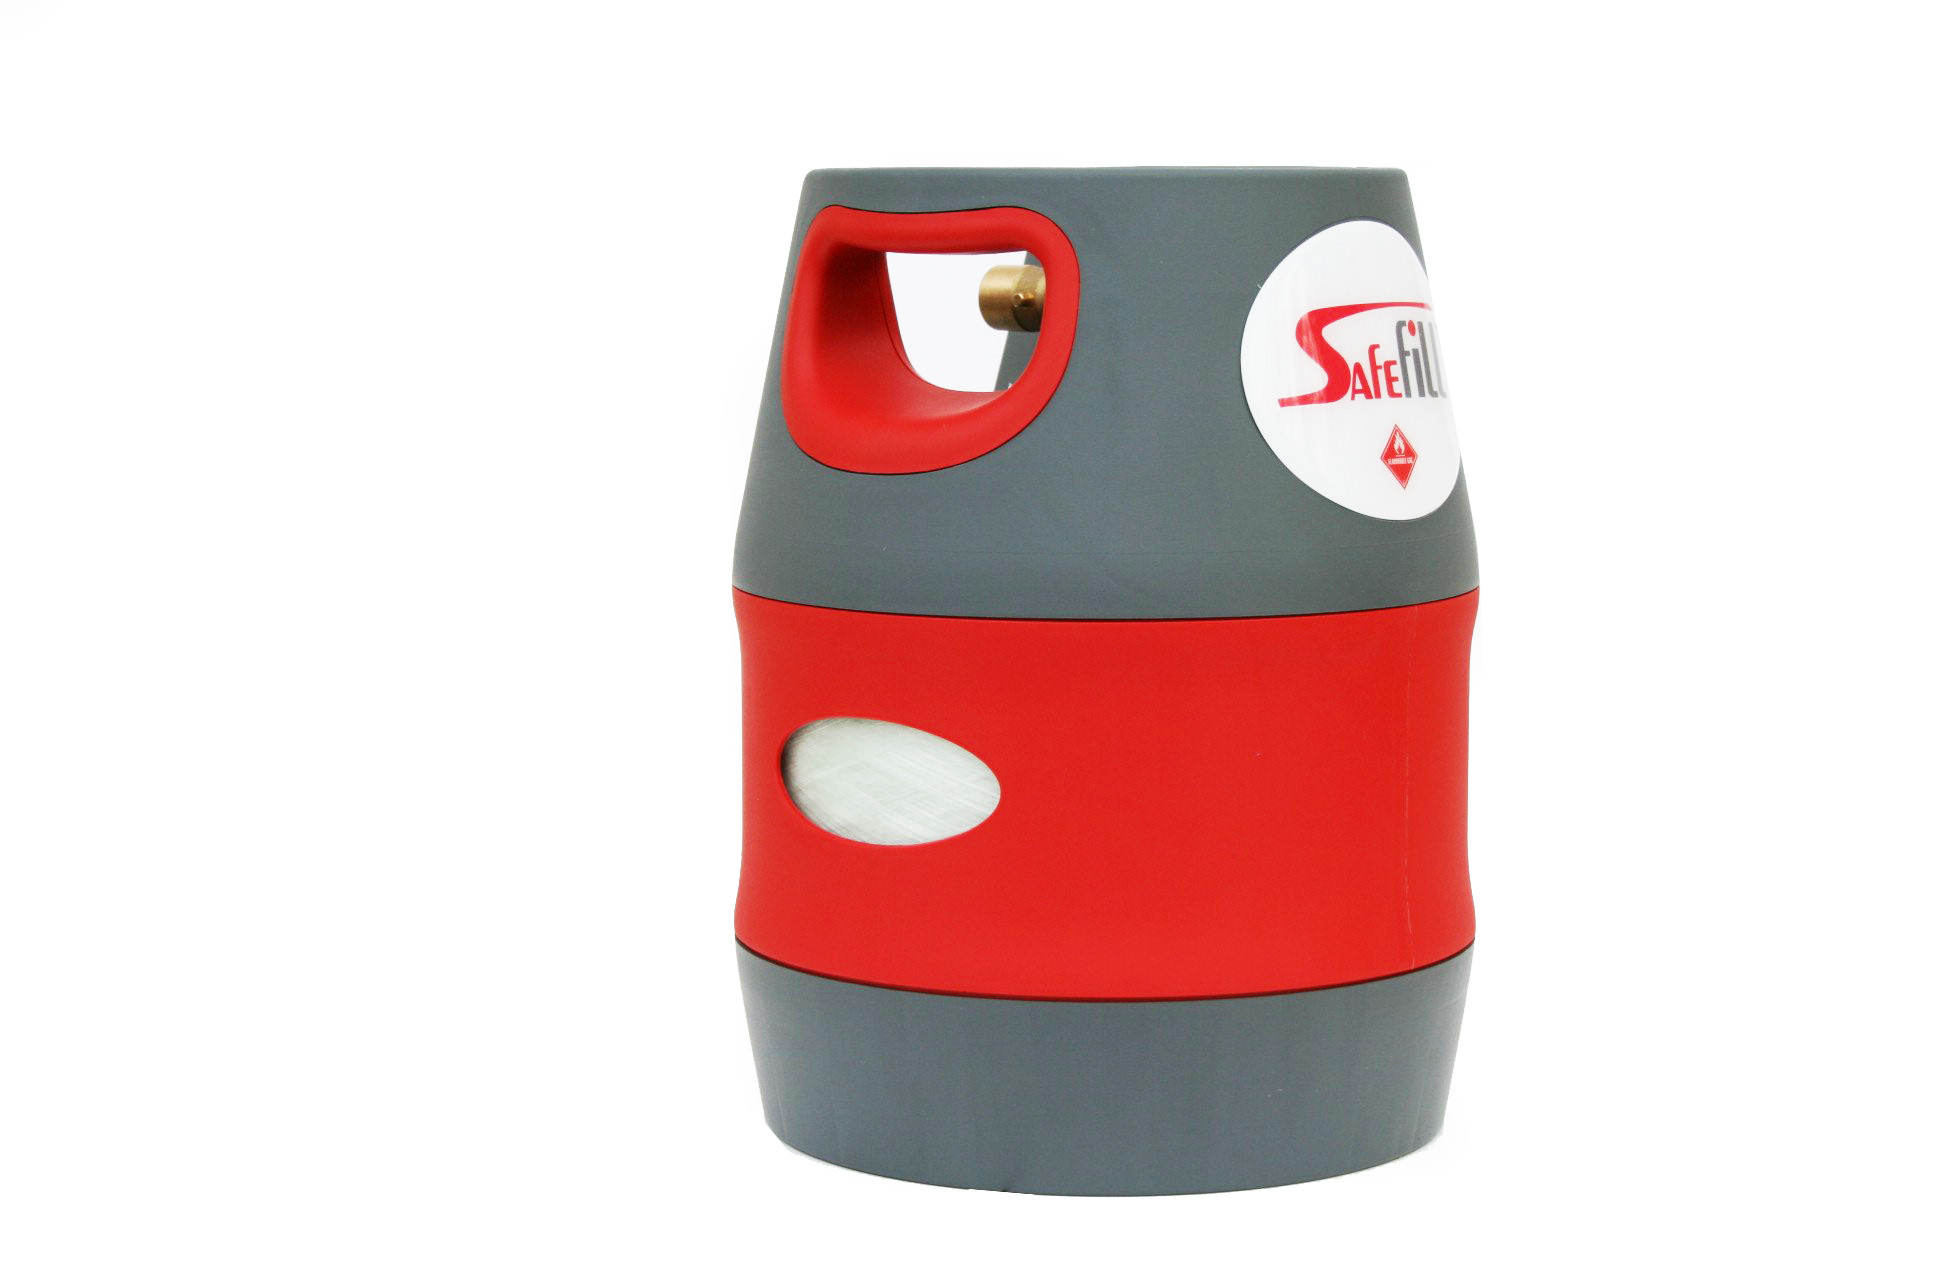 Safefill 5 kg refillable Propane cylinder